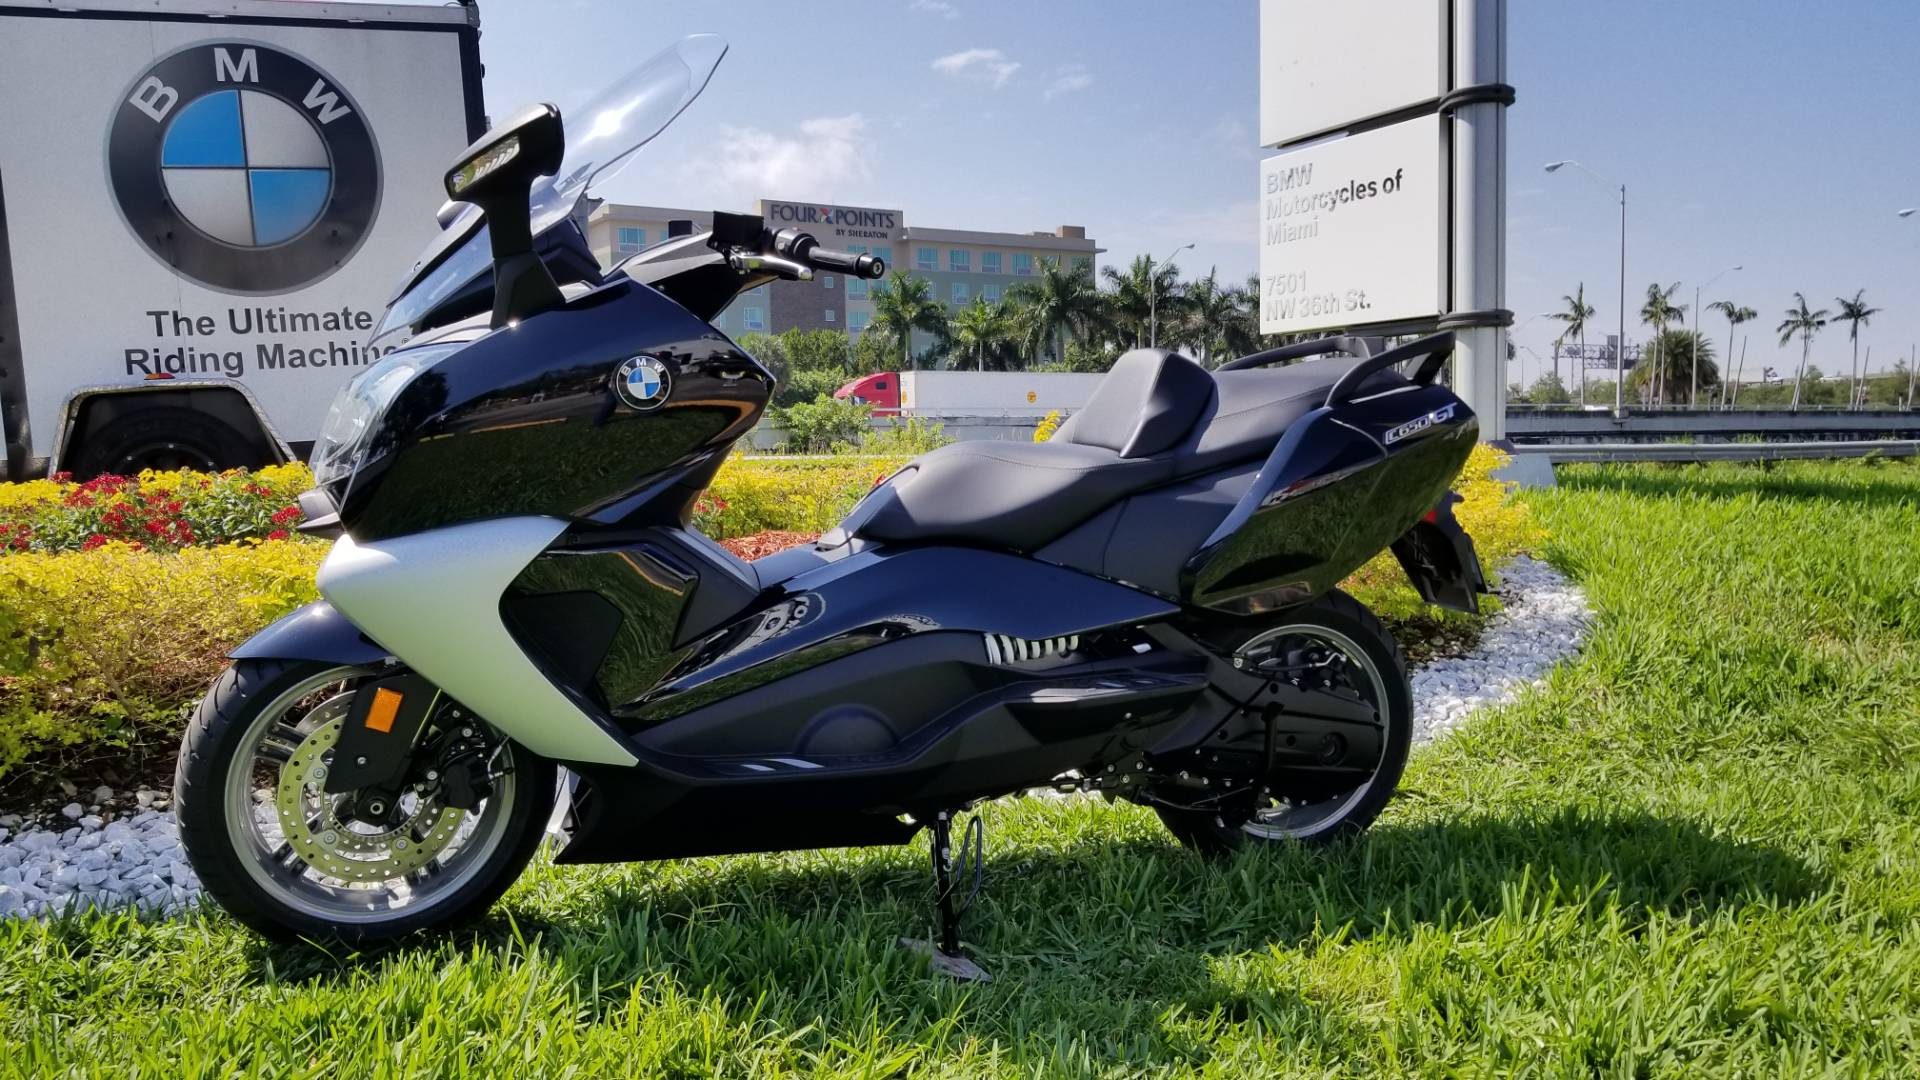 New 2019 BMW C 650 GT for sale, BMW C 650GT for sale, BMW Motorcycle C650GT, new BMW Scooter, Maxi Scooter, BMW. BMW Motorcycles of Miami, Motorcycles of Miami, Motorcycles Miami, New Motorcycles, Used Motorcycles, pre-owned. #BMWMotorcyclesOfMiami #MotorcyclesOfMiami #MotorcyclesMiami - Photo 7